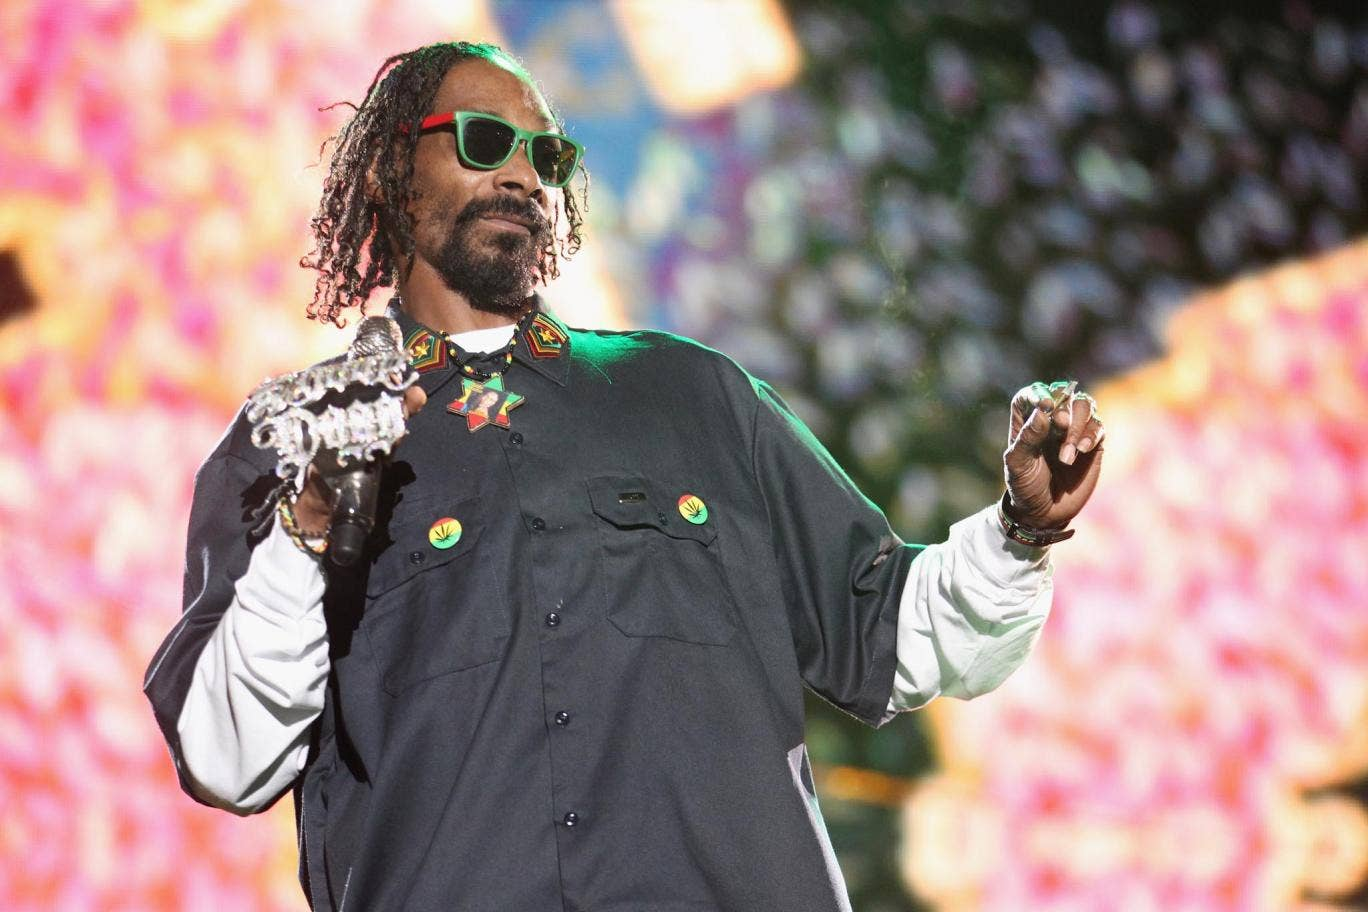 Snoop Dogg performs on stage at Coachella, 2012